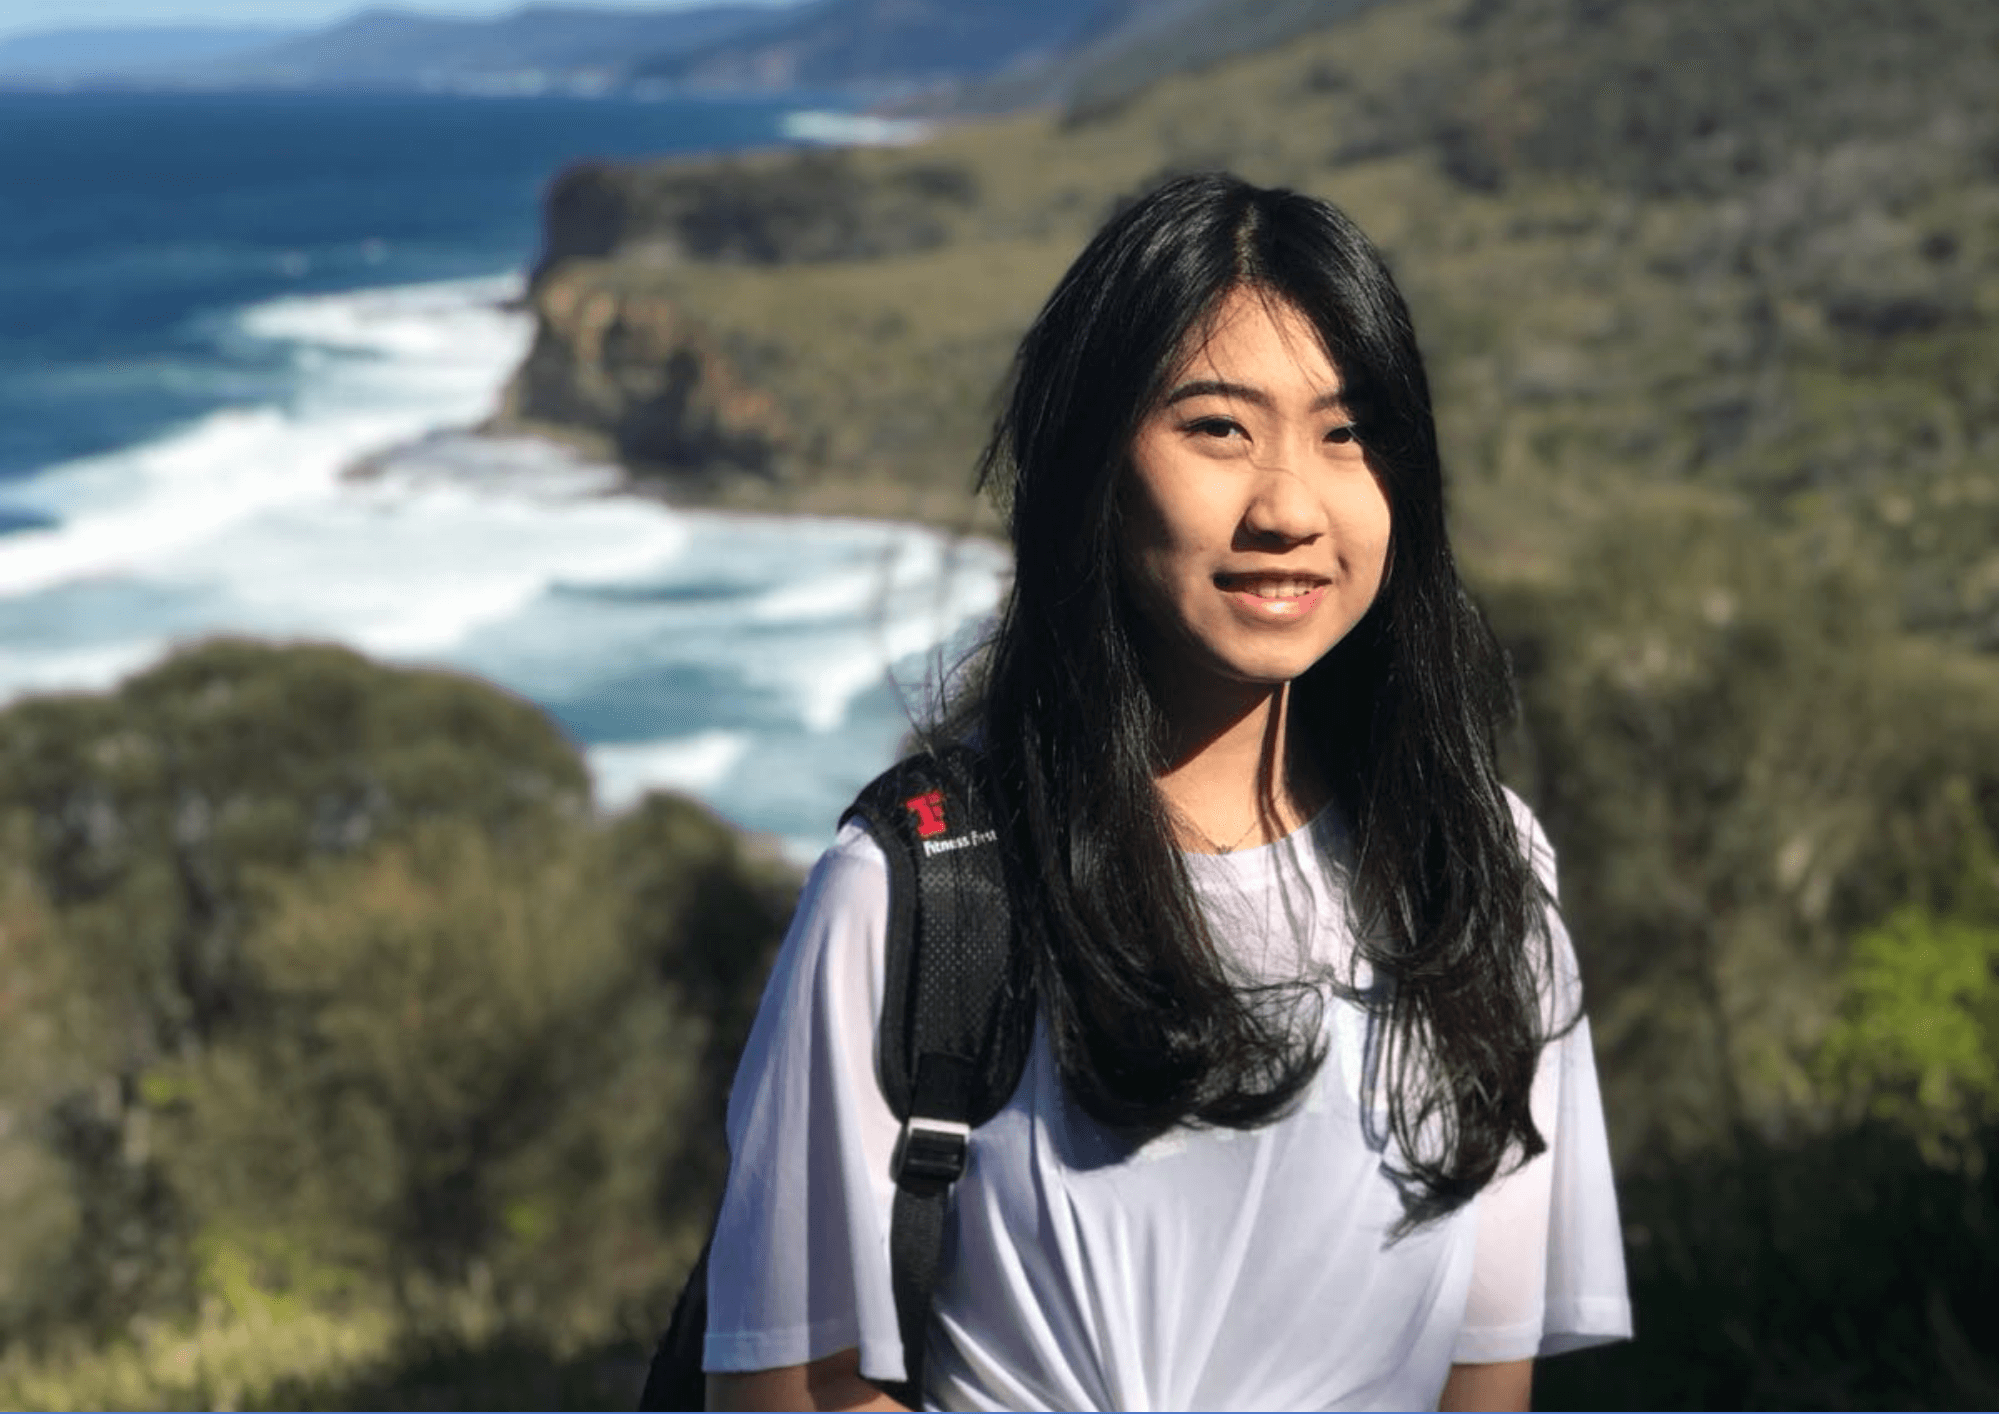 This Indonesian student can't wait to get back to Australia